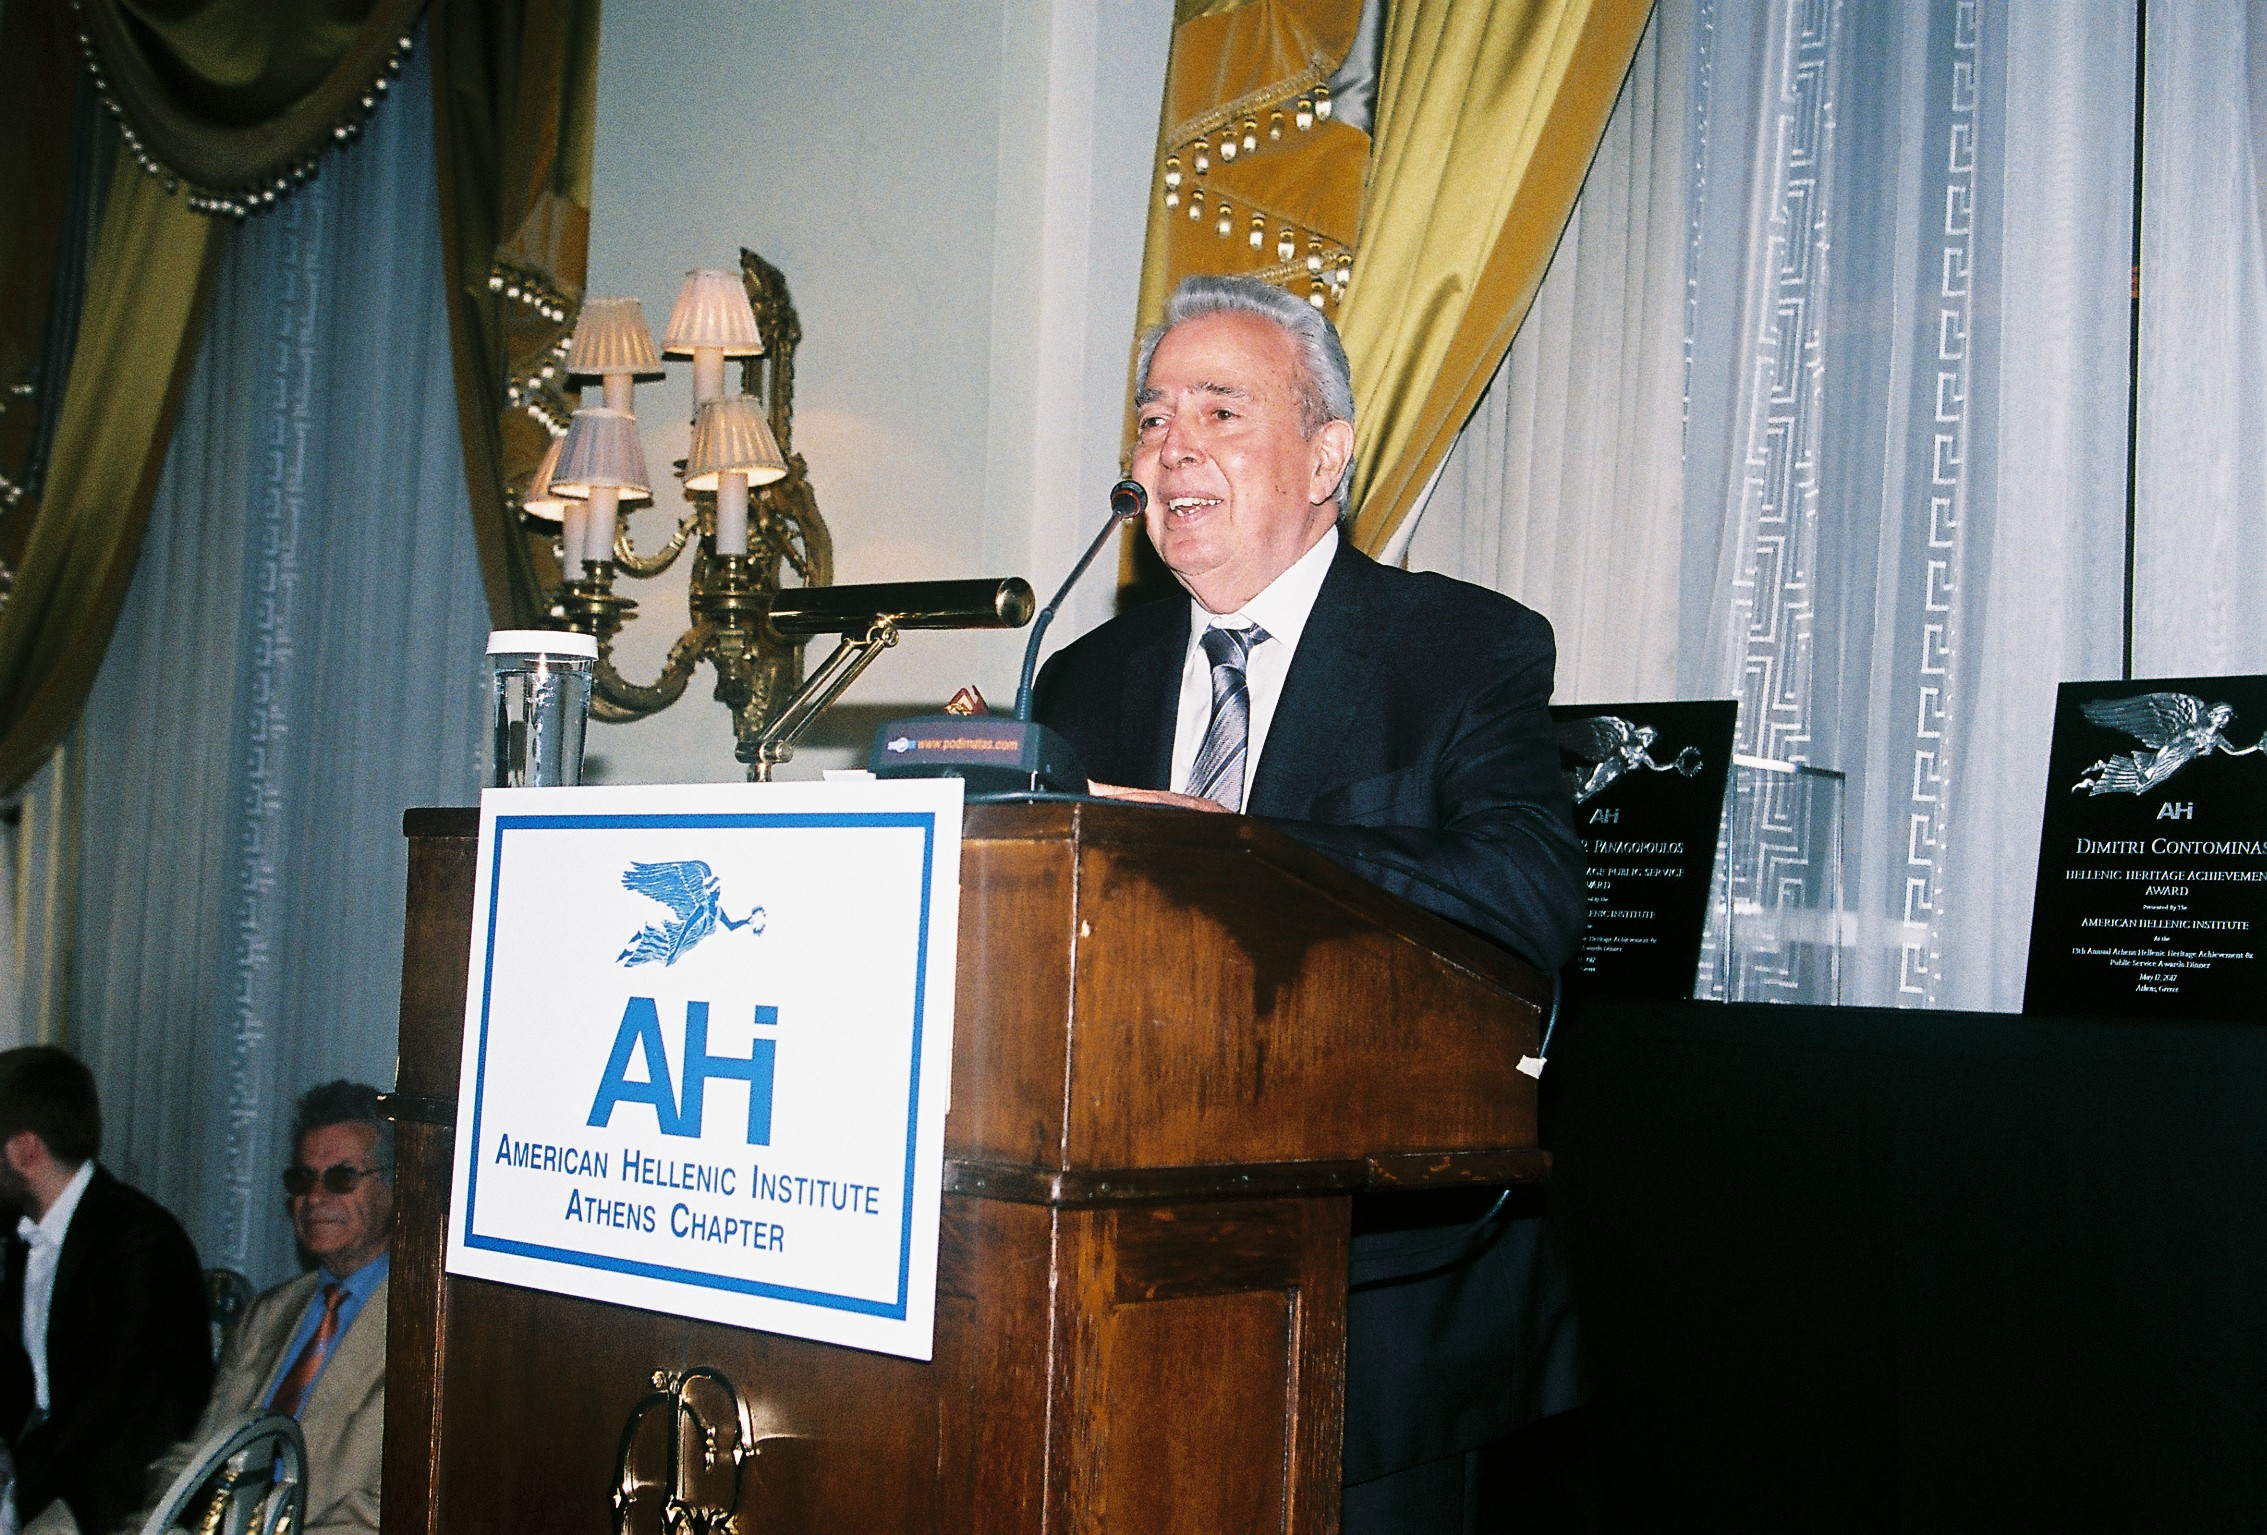 George Economou, President of AHI- Athens Chapter